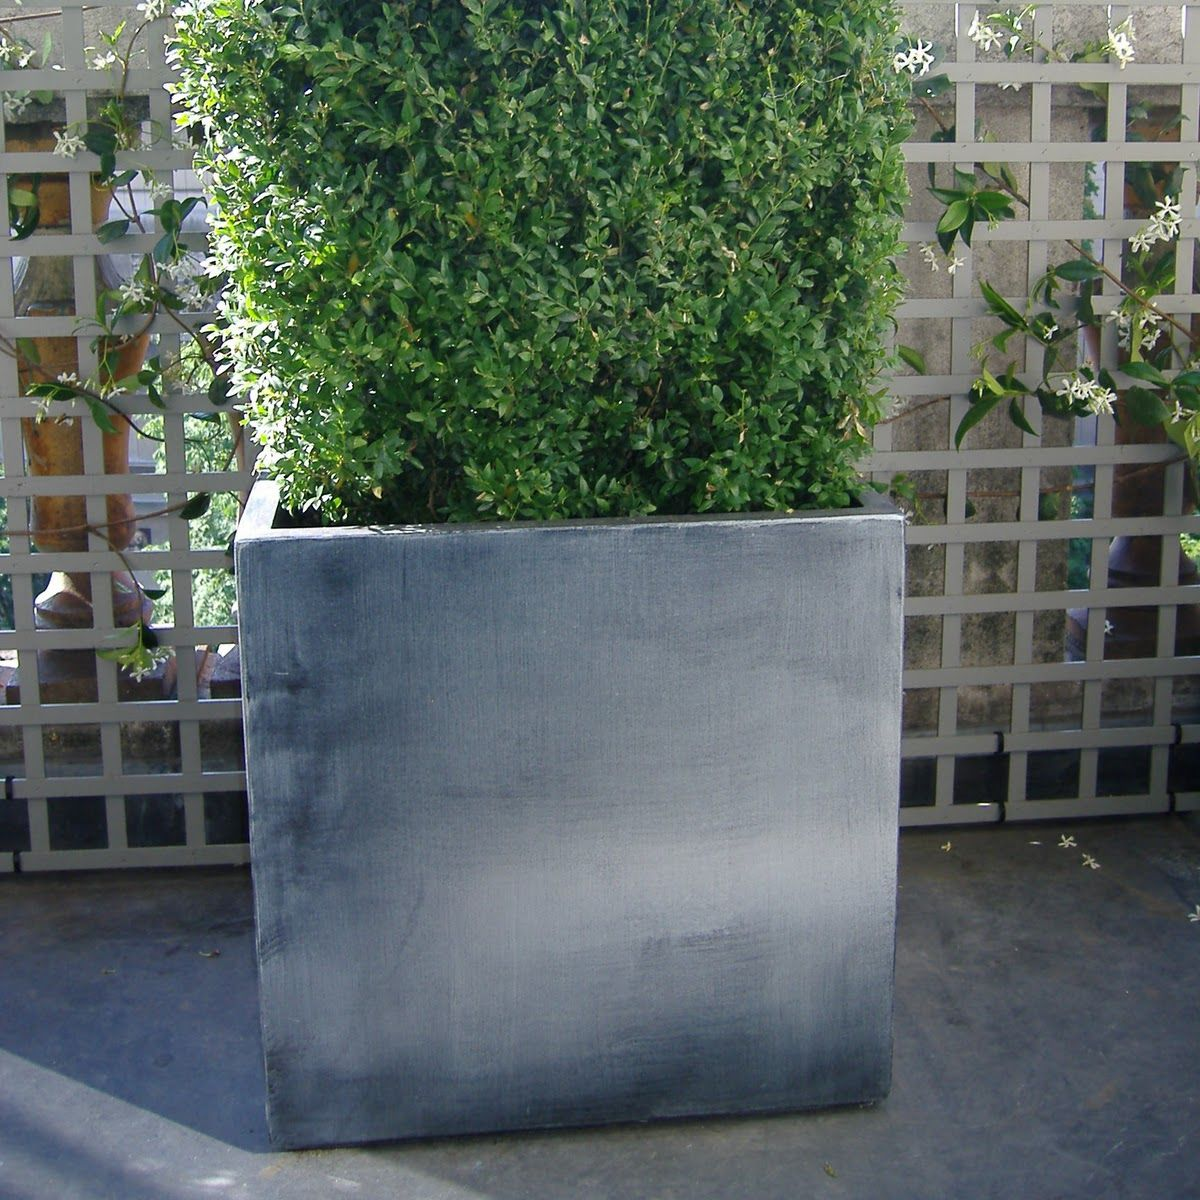 Fiber cement planter / zinc / square / rectangular - IMAGE'IN ... on square aluminum planters, square iron planters, square stone planters, square brass planters, square outdoor planters, square tin planters, square terracotta planters, square fiberglass planters, square lead planters, square plastic planters, square white planters, square garden planters,